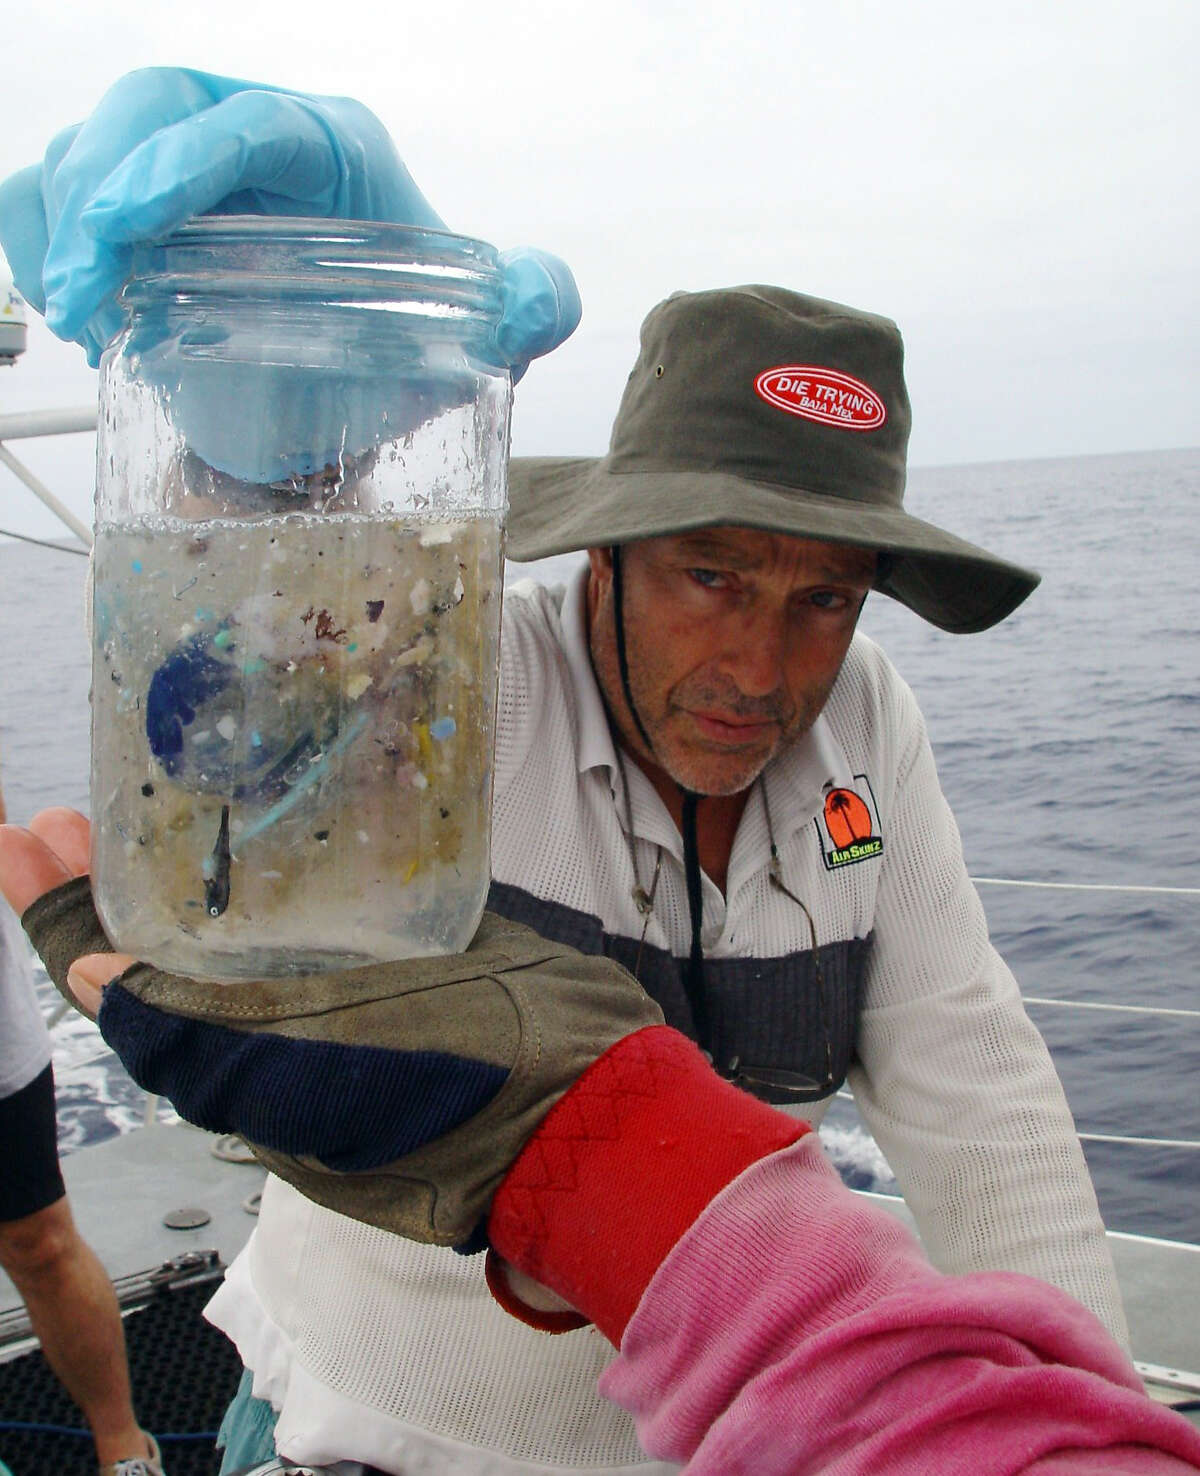 Marine researcher Charles Moore holds a sample of ocean water from the North Central Pacific Gyre that contains small pieces of plastic.